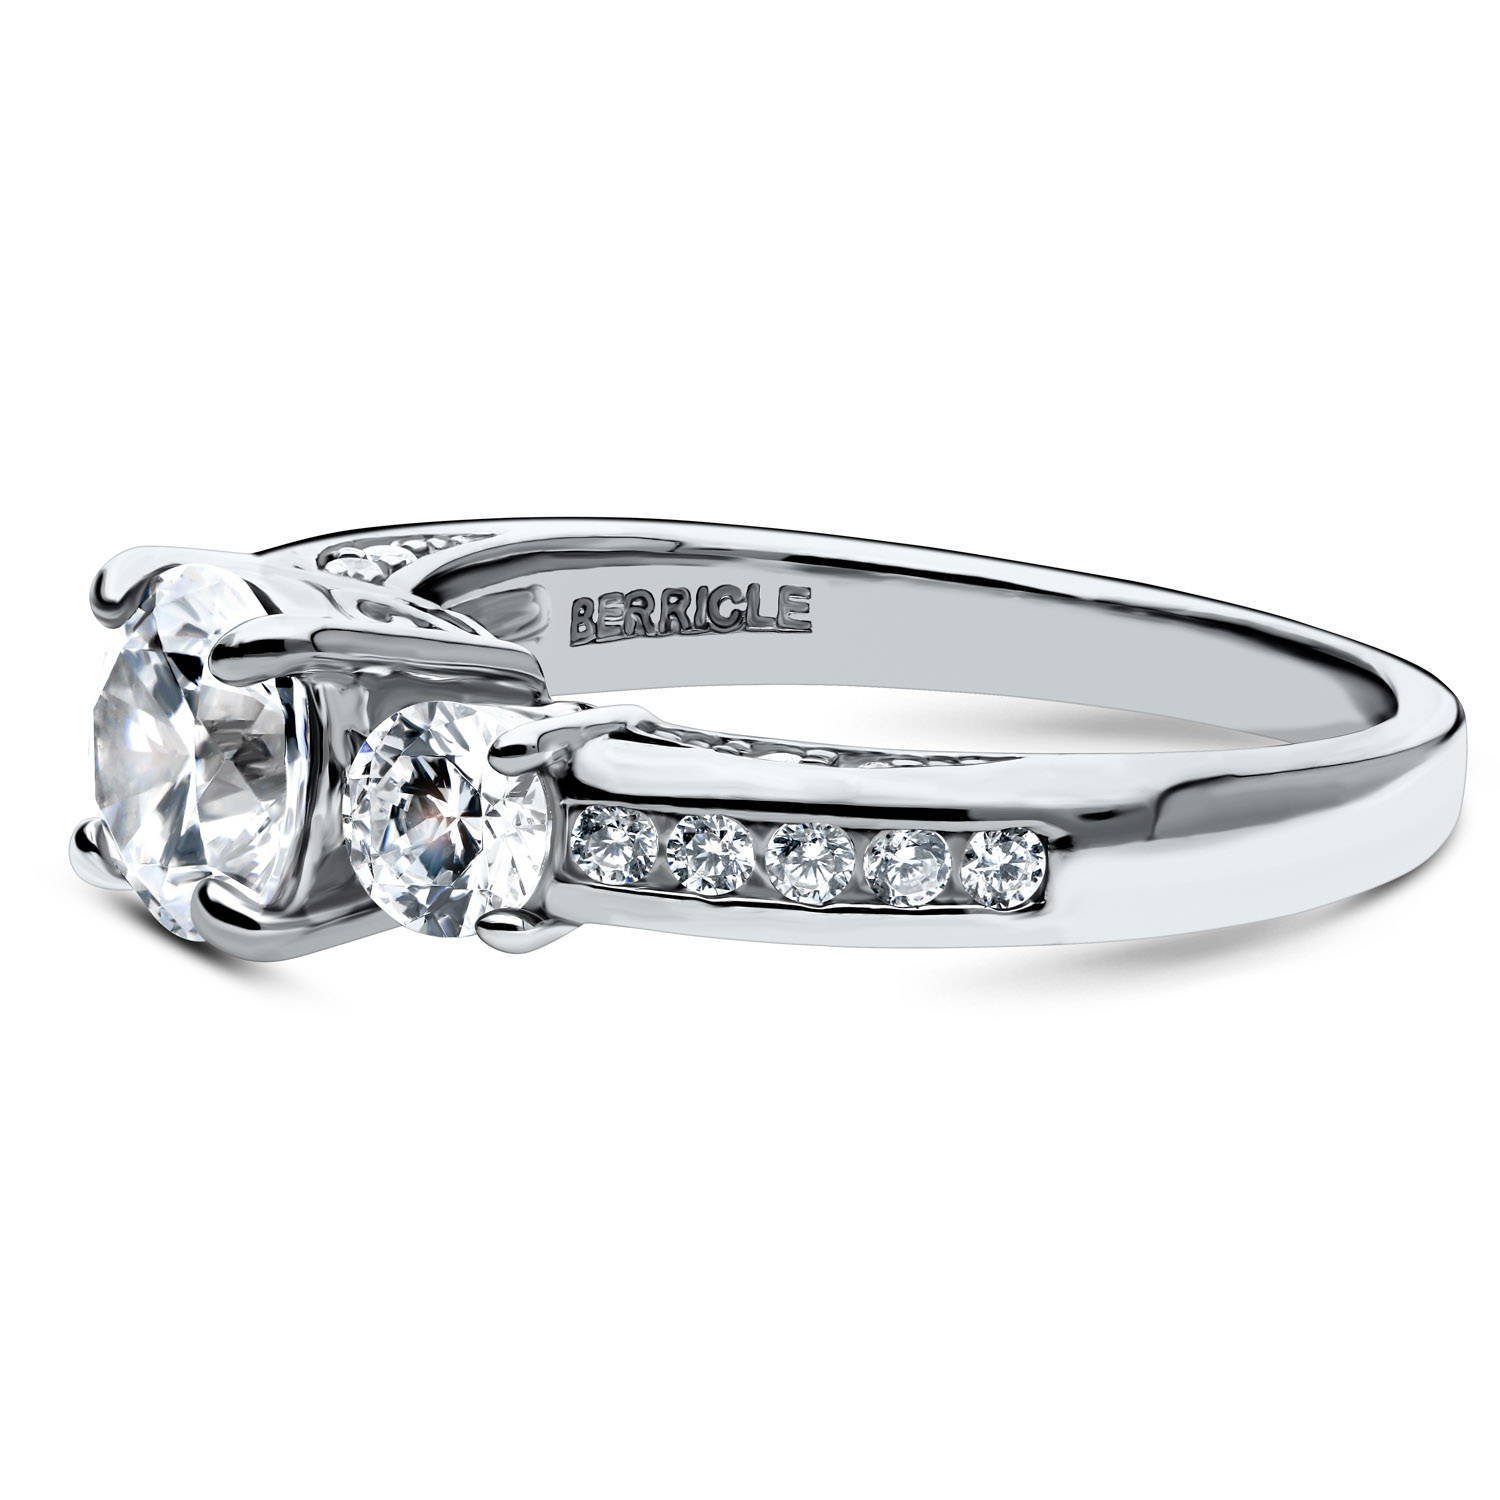 BERRICLE Rhodium Plated Sterling Silver Round Cubic Zirconia CZ 3-Stone Anniversary Promise Engagement Ring 1.73 CTW